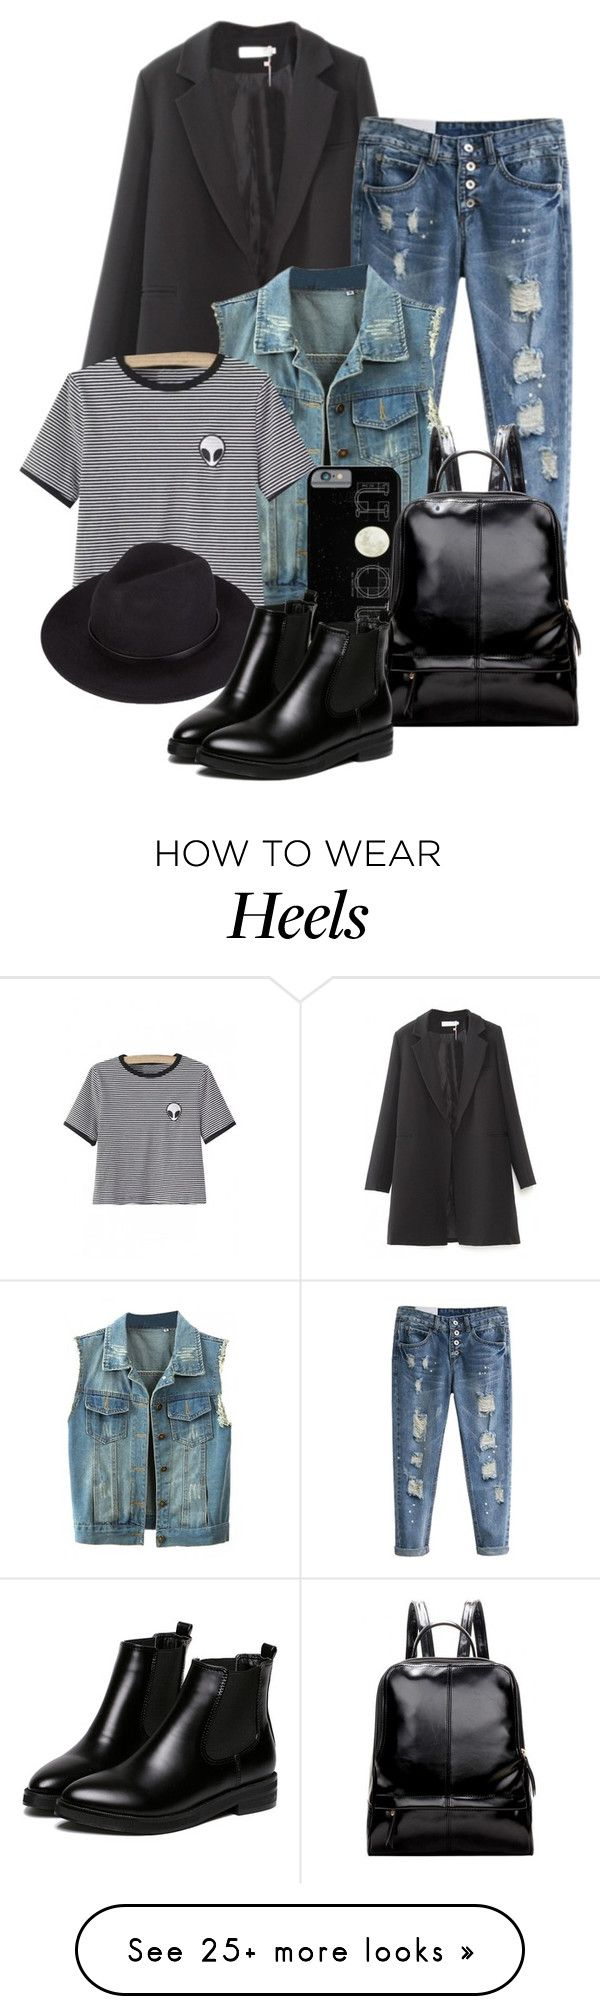 """""""Street Style _ Beautiful Halo"""" by by-jwp on Polyvore featuring WithChic, women's clothing, women's fashion, women, female, woman, misses, juniors and beautifulhaloz"""